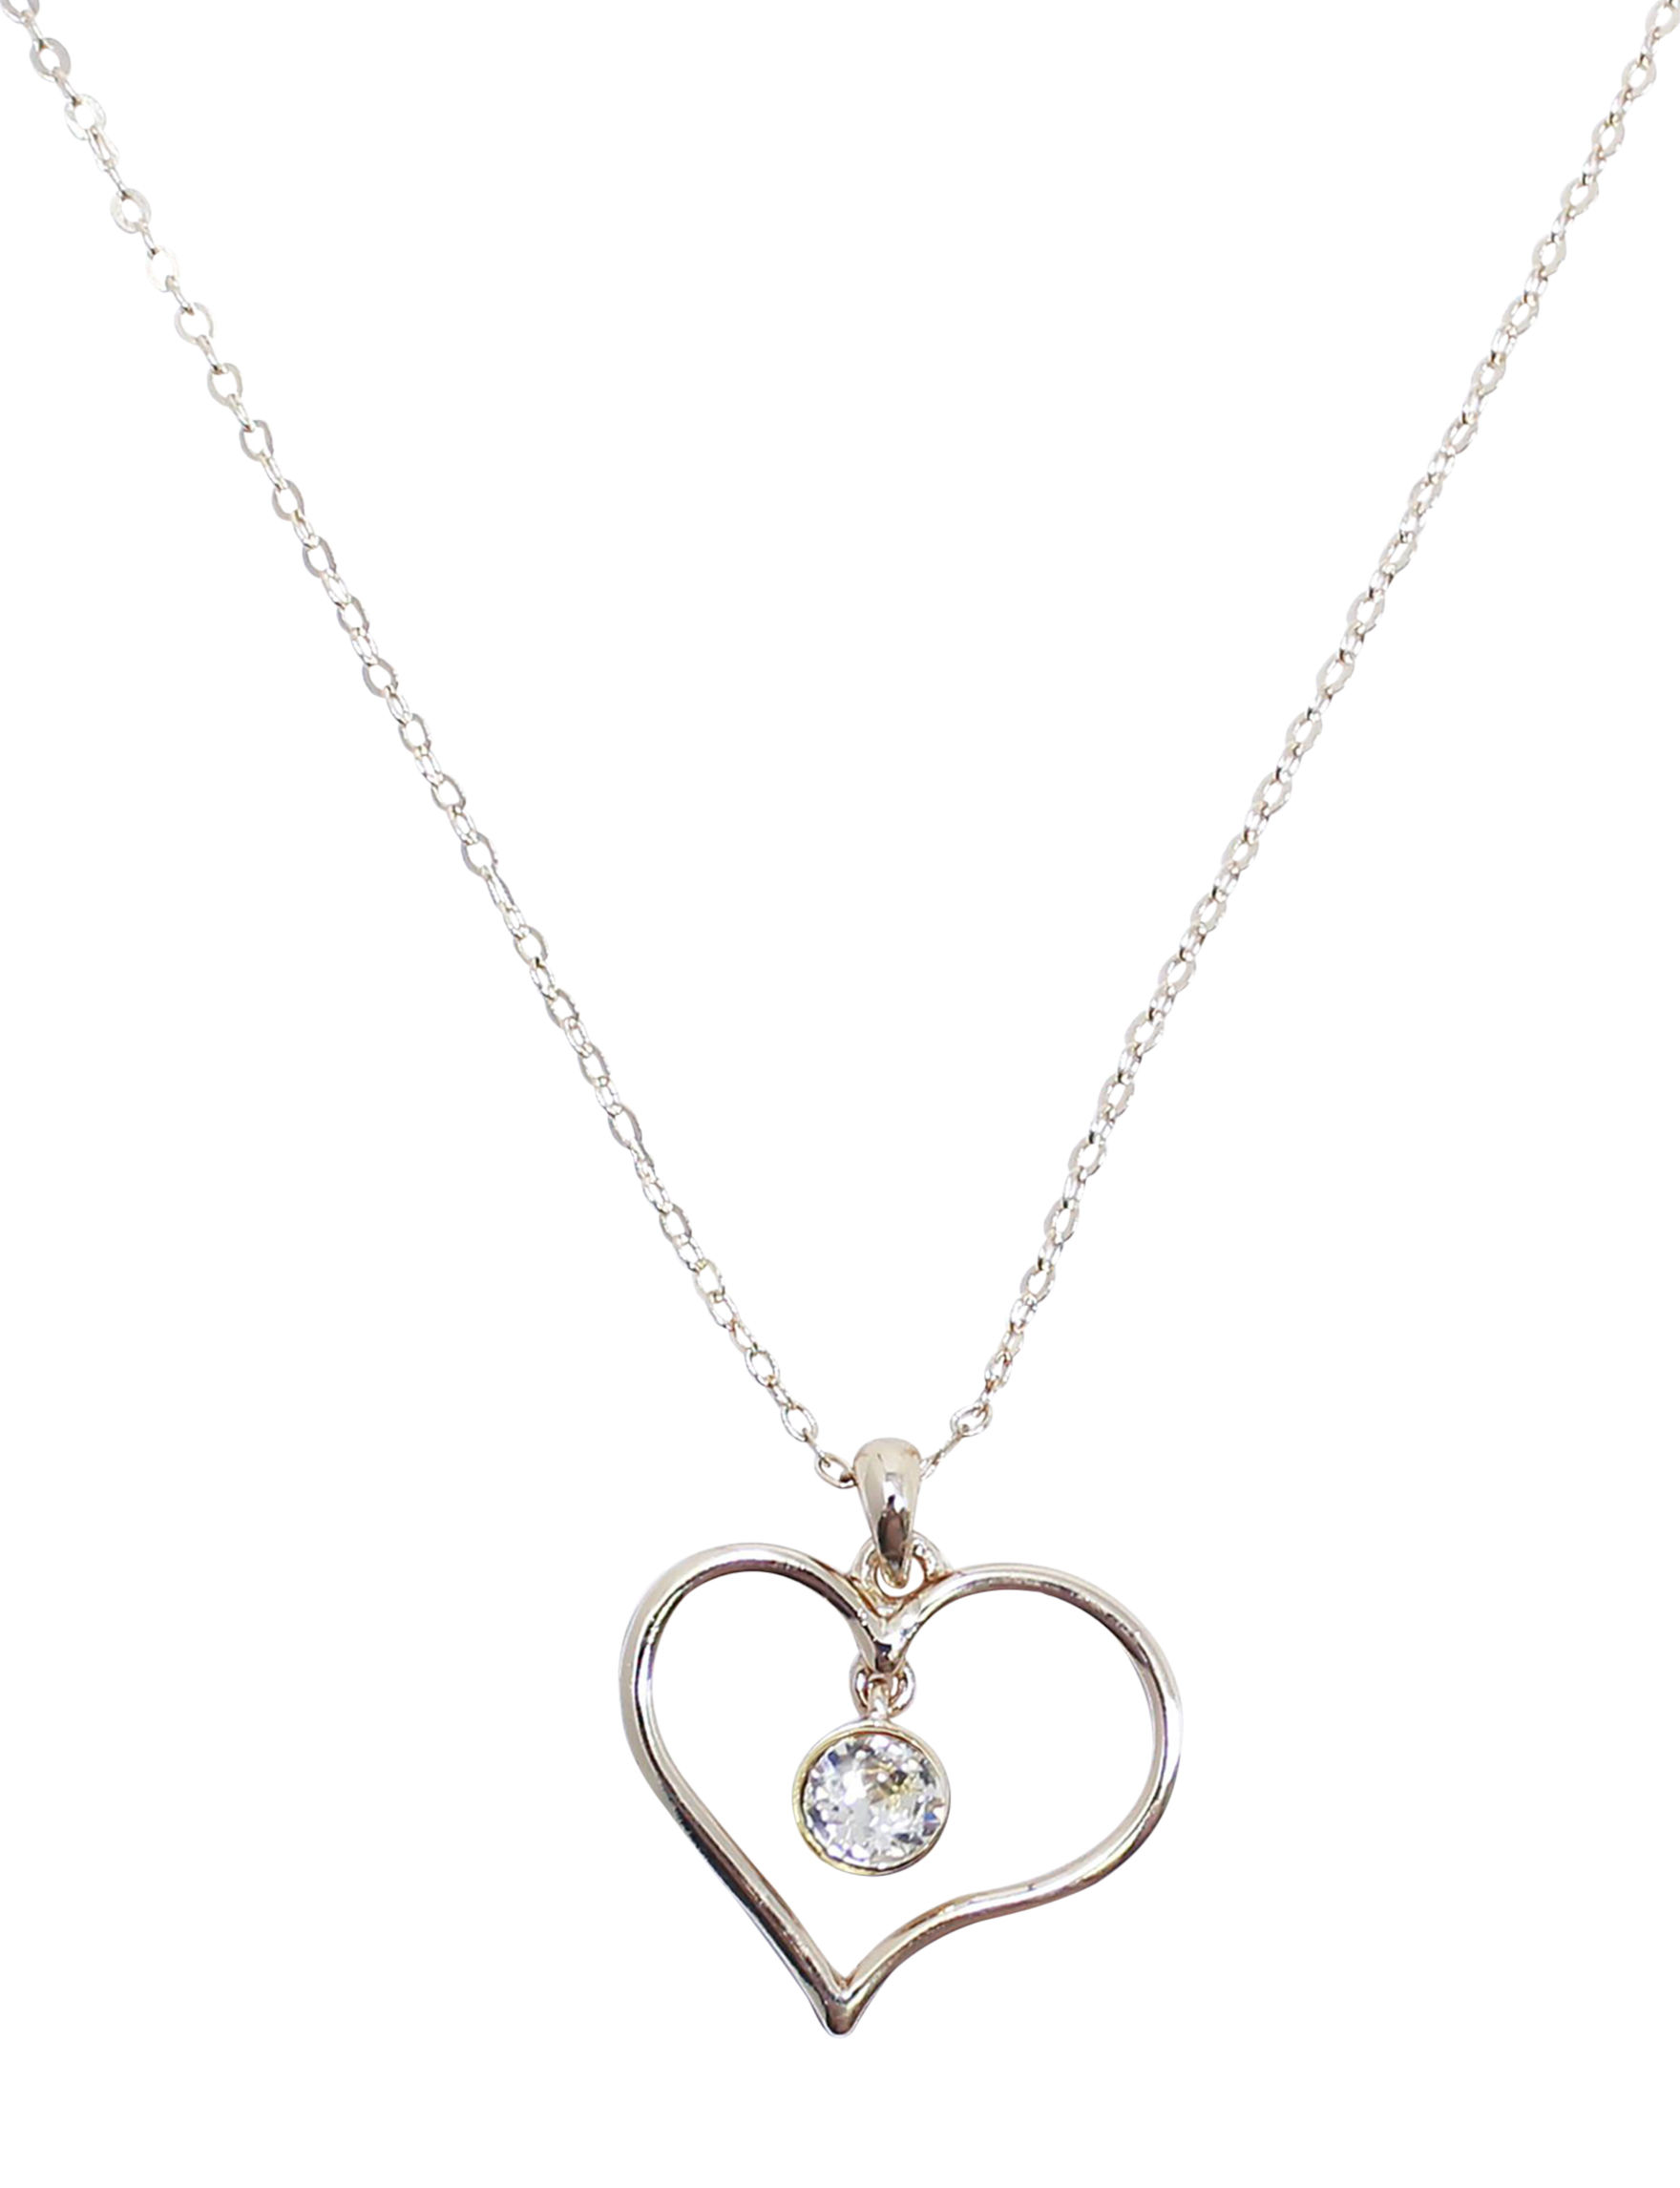 L & J Crystal Necklaces & Pendants Fine Jewelry